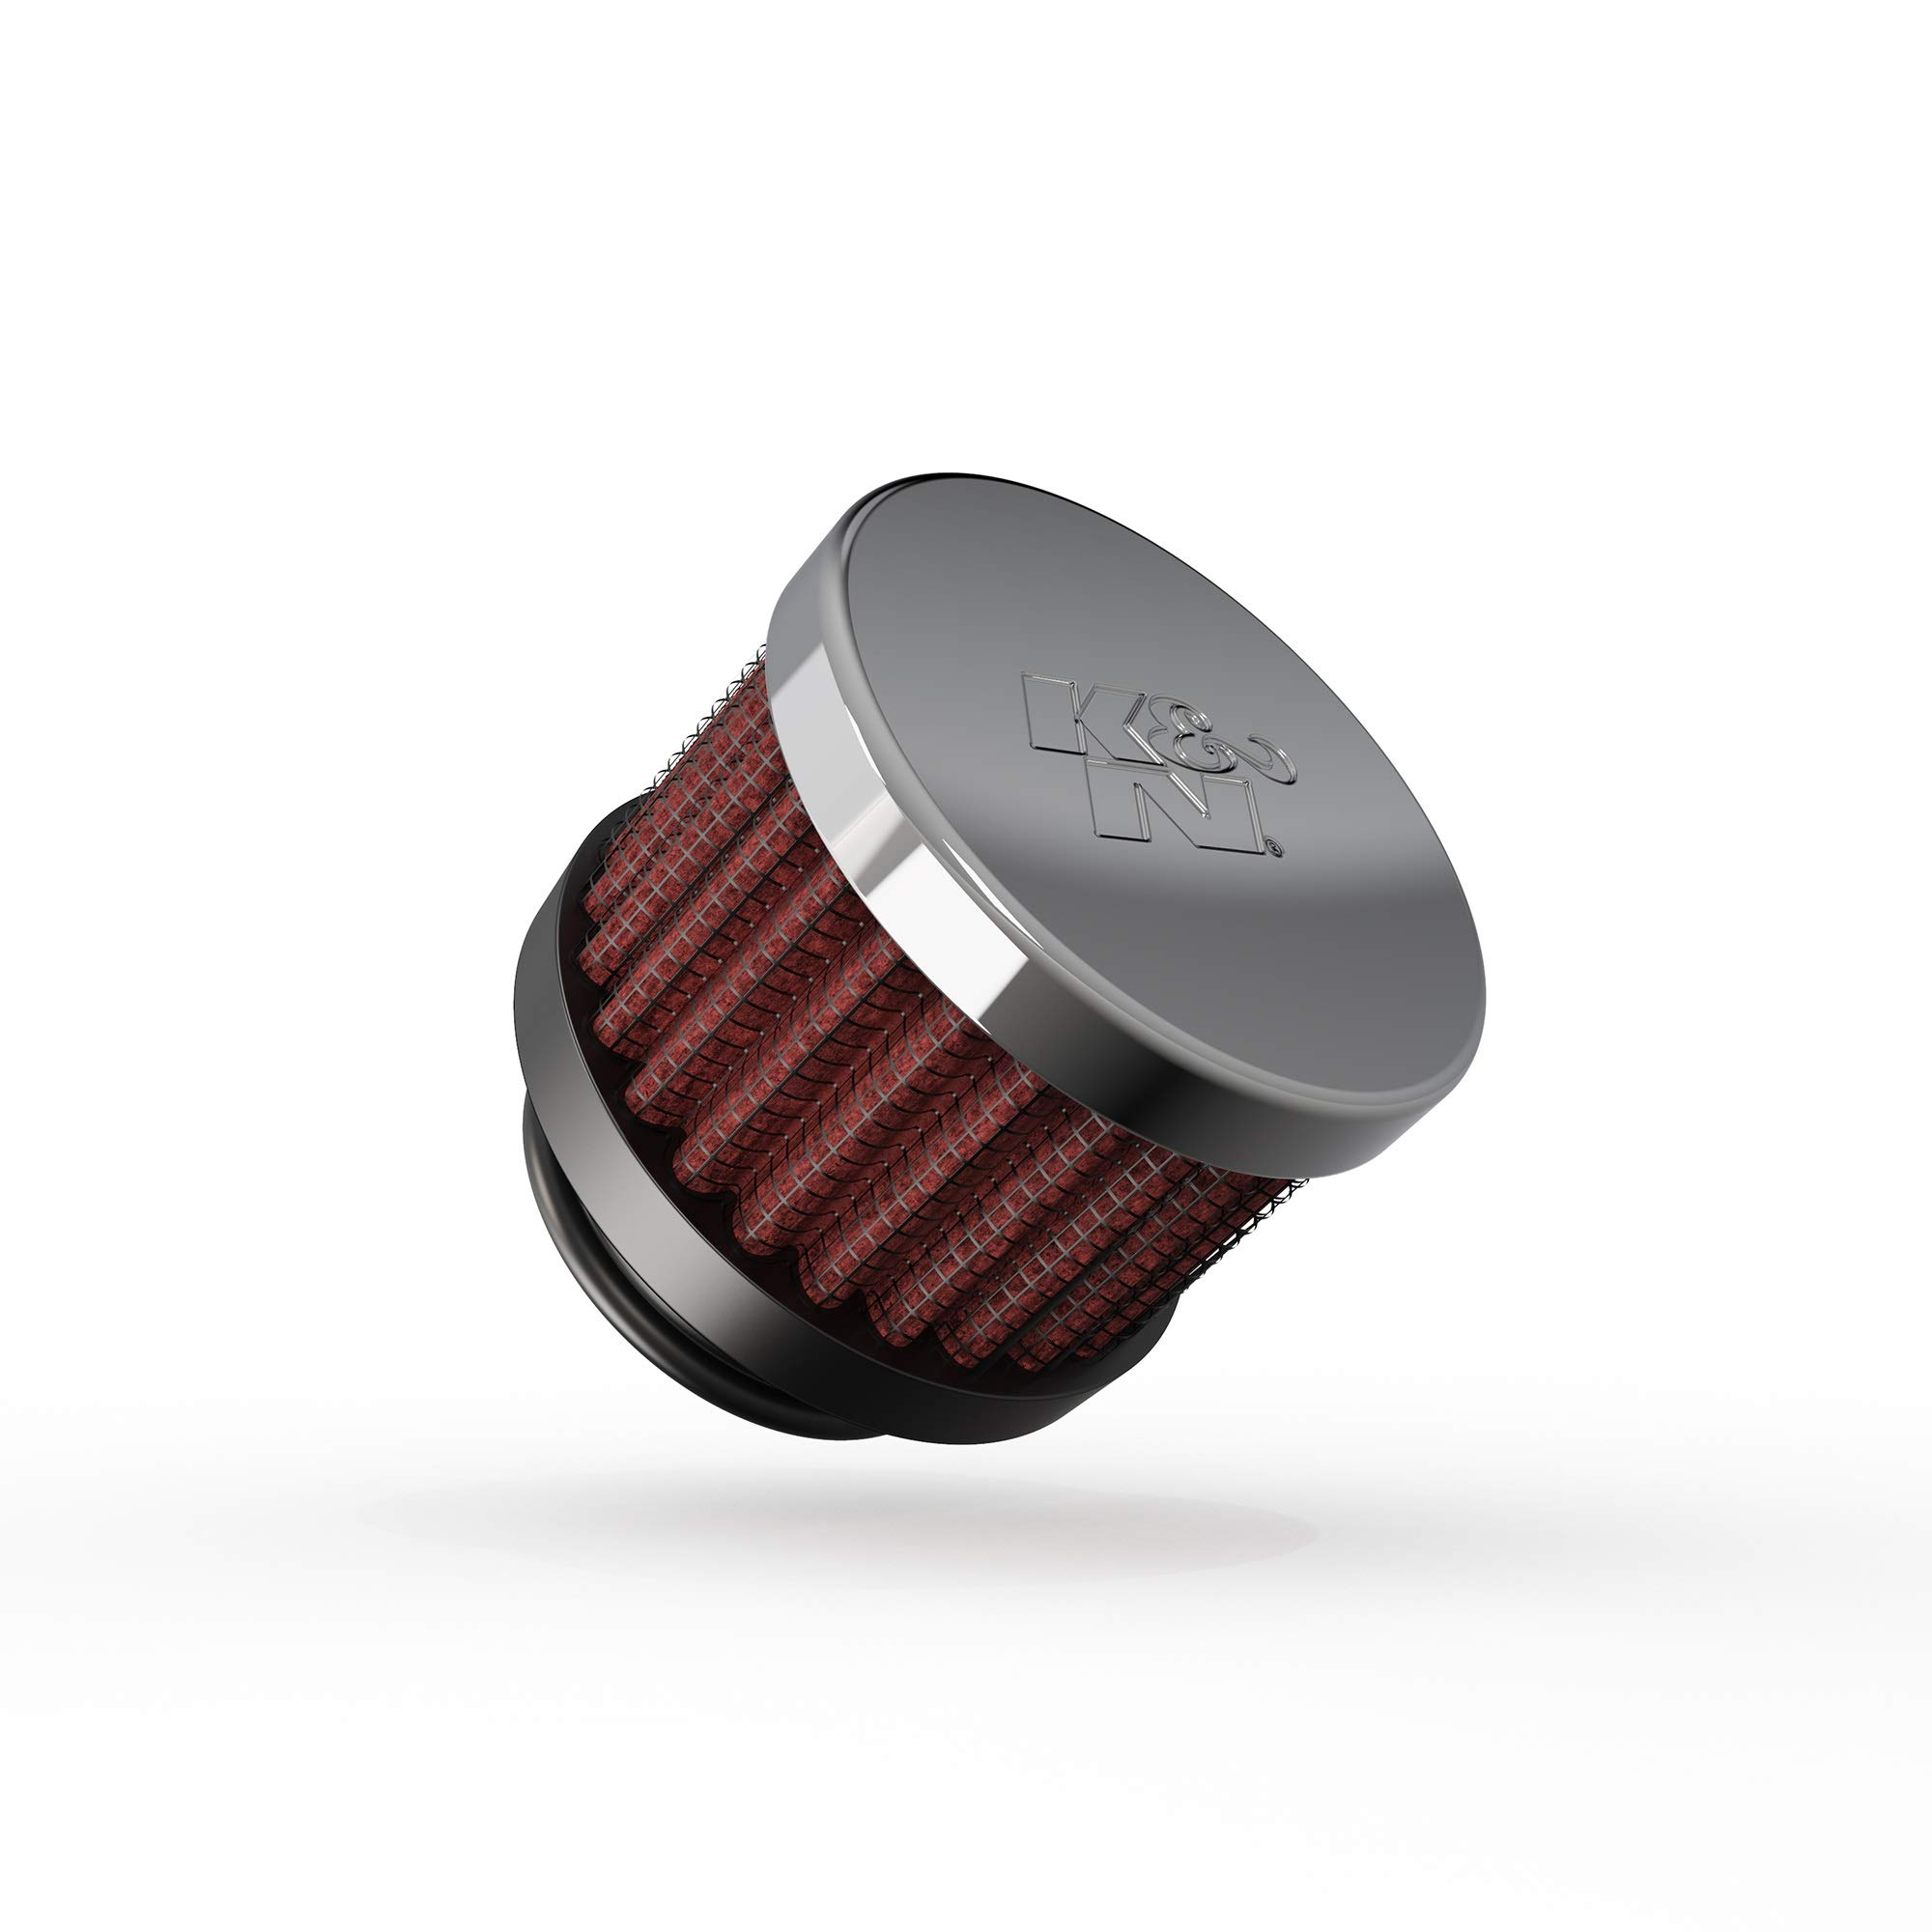 K&N Vent Air Filter/ Breather: High Performance, Premium, Washable, Replacement Engine Filter: Flange Diameter: 1 In, Filter Height: 1.5 In, Flange Length: 0.625 In, Shape: Breather, 62-1370 , Black